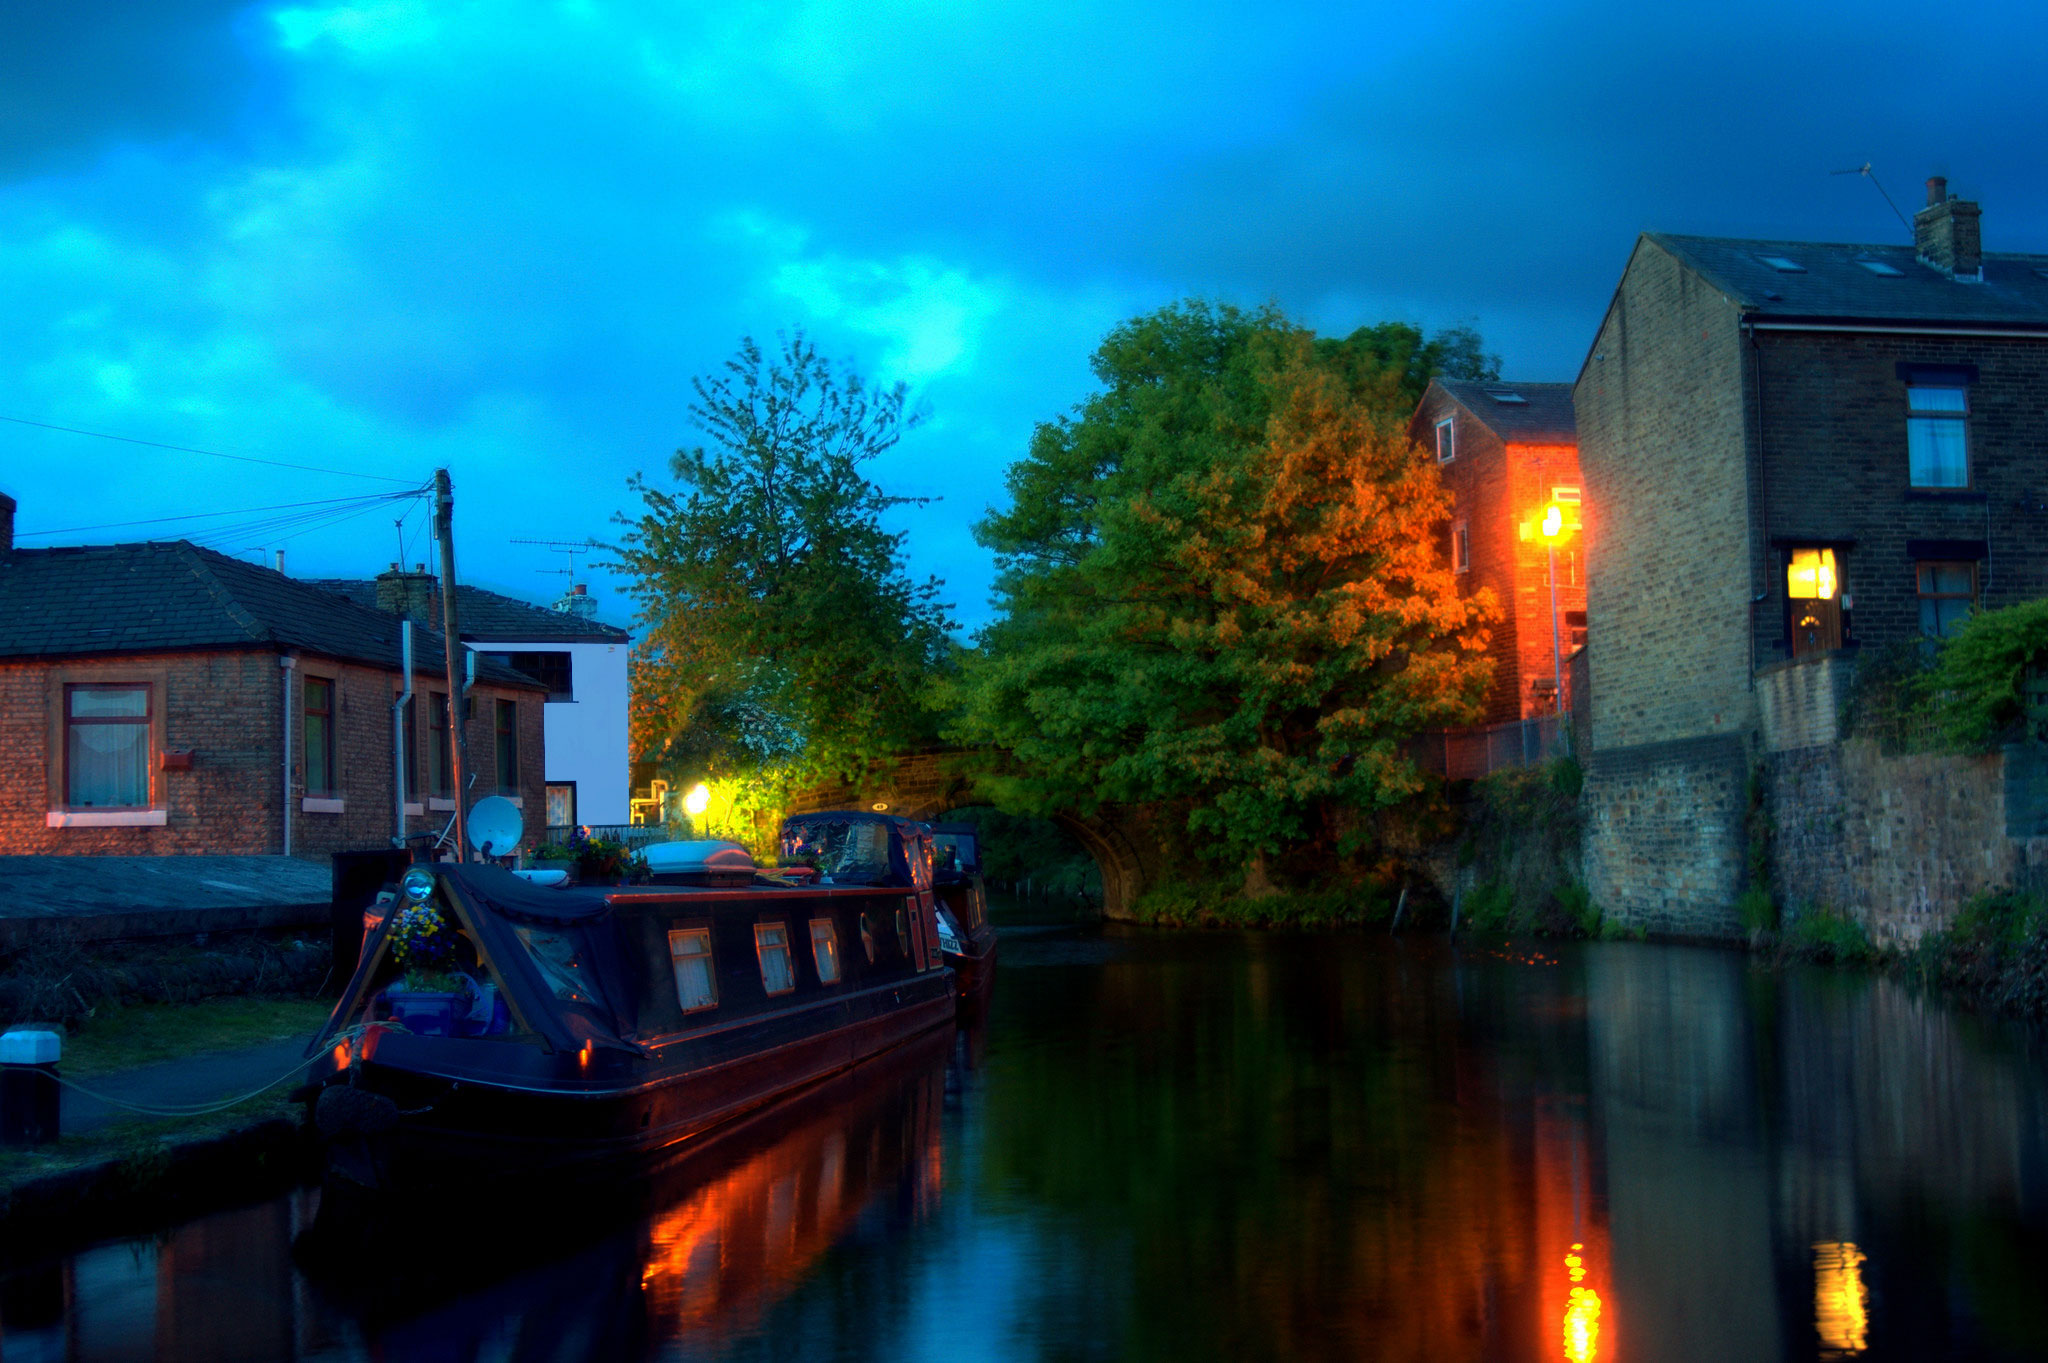 Ealees Canal Evening